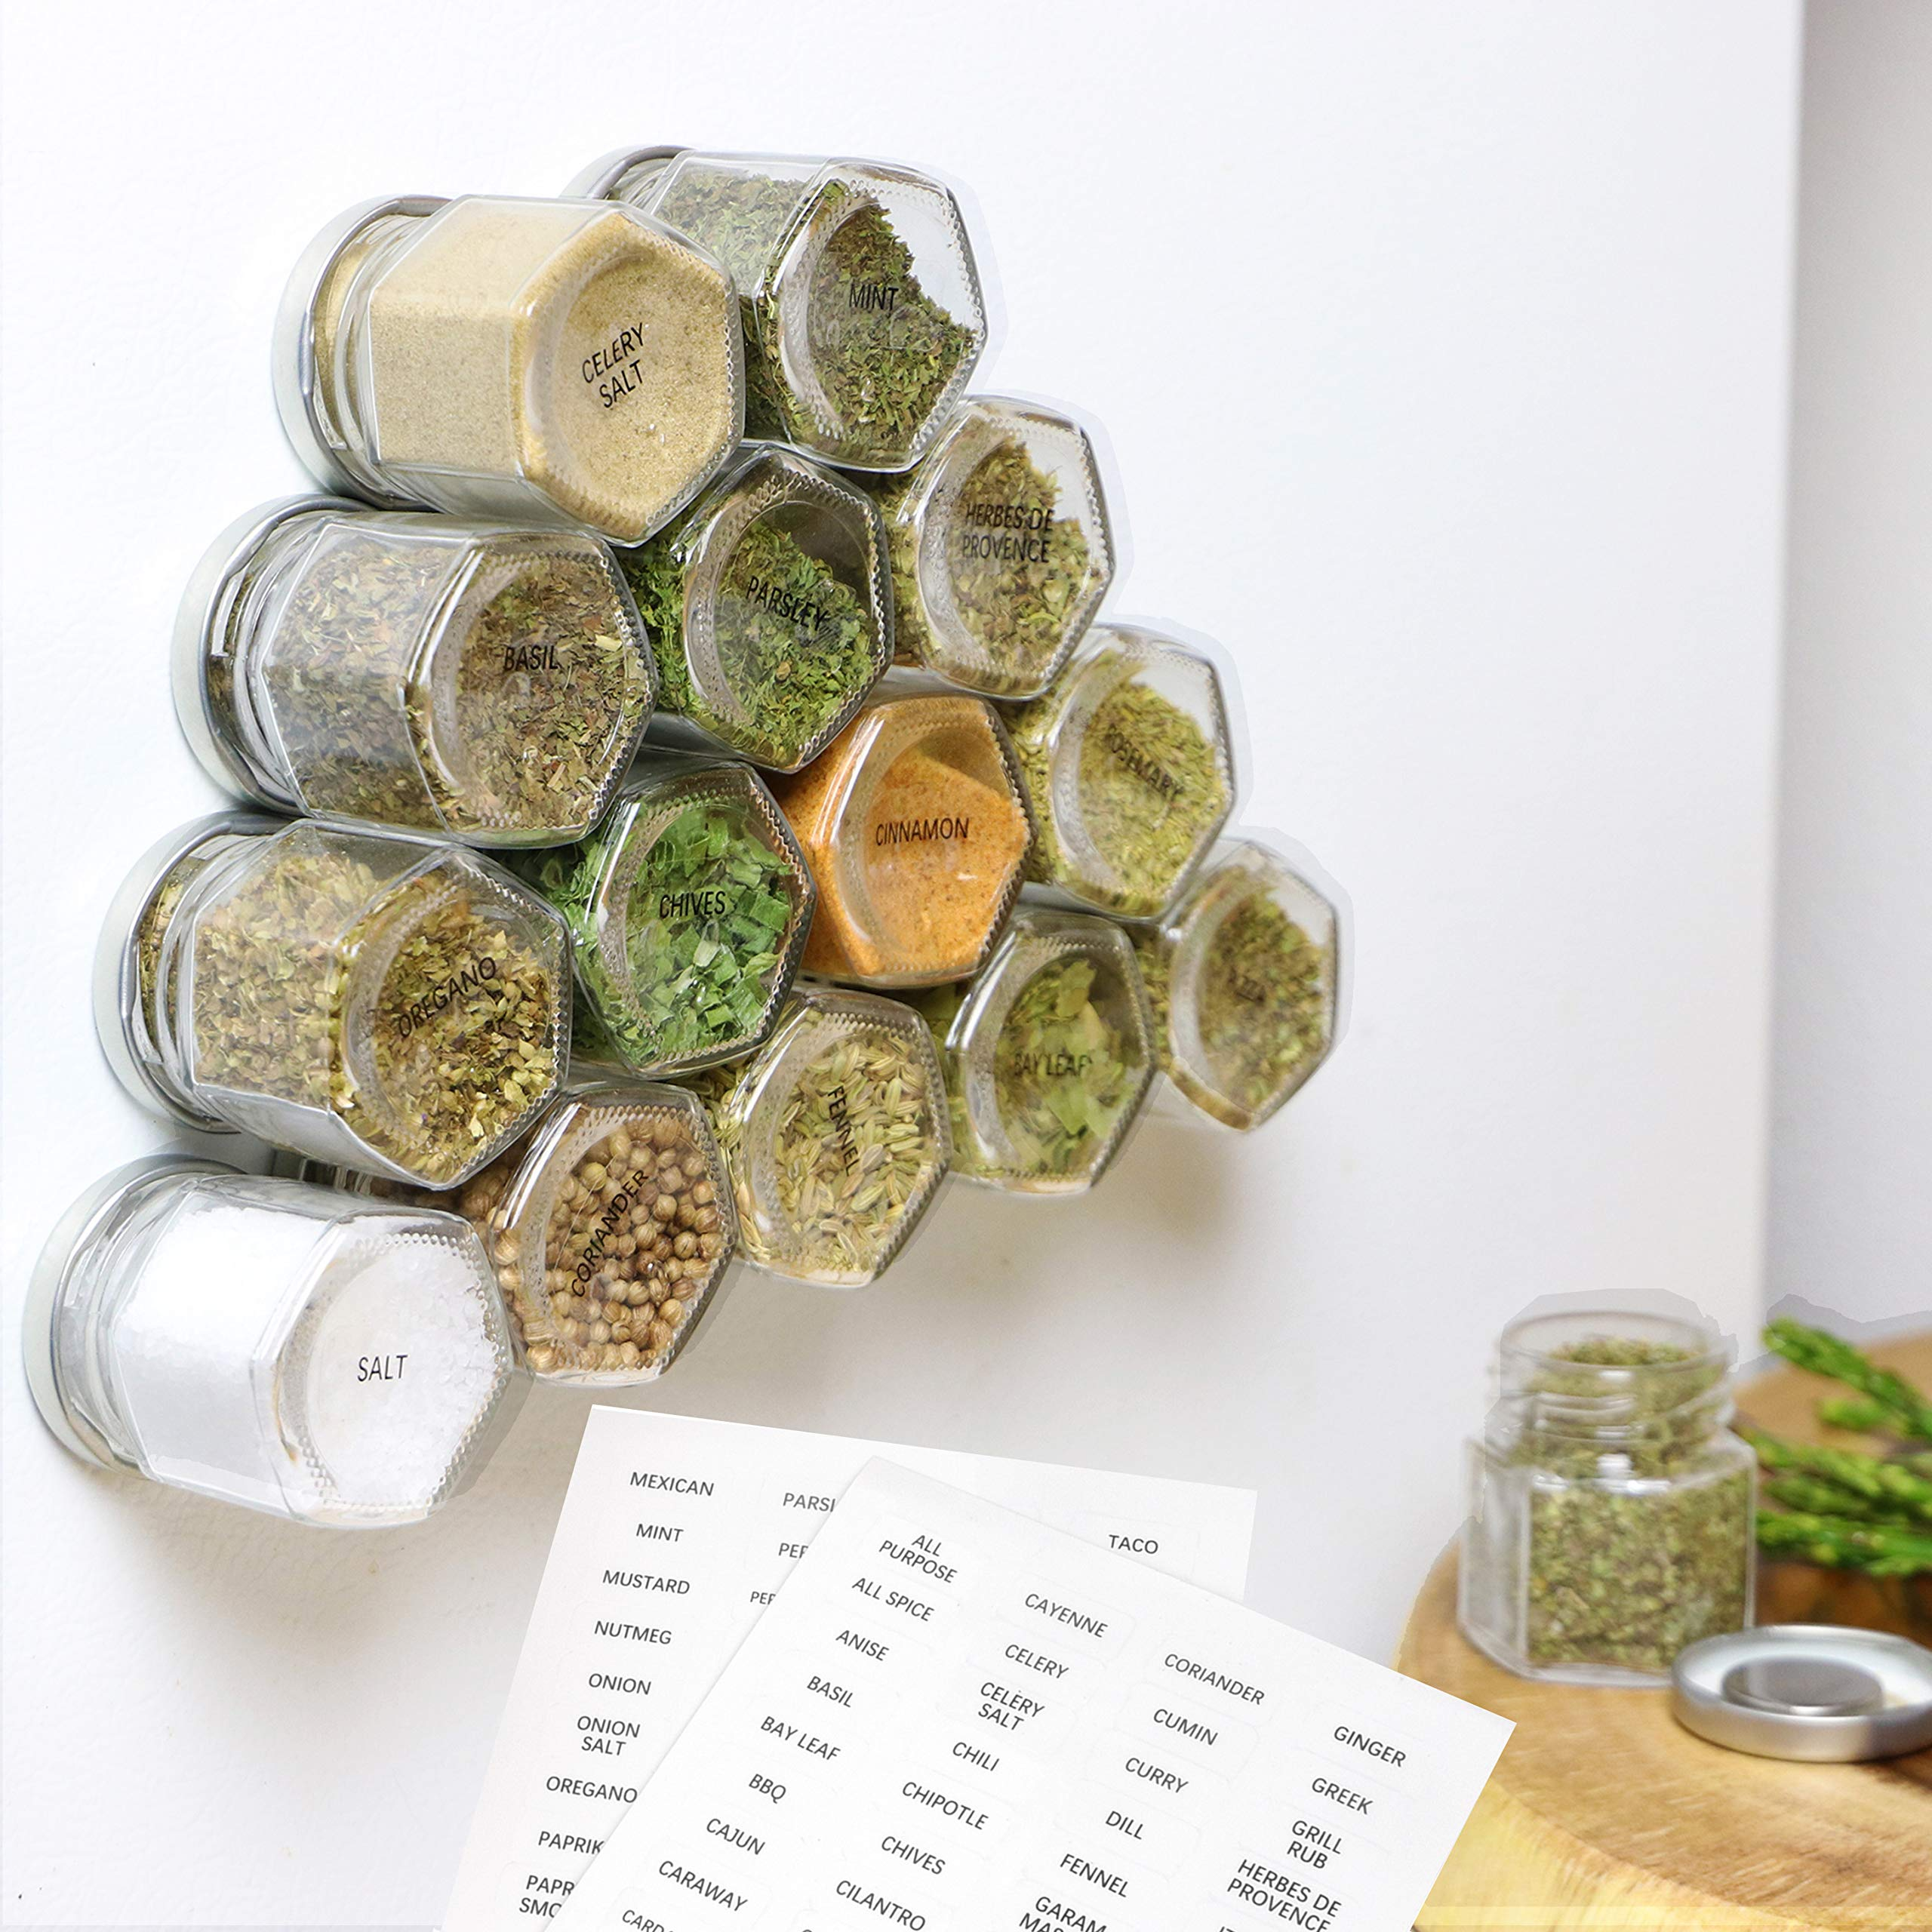 15-Pack Magnetic Spice Jars Hexagon Glass Spice Jars With Stainless Steel Strong Magnet Lids - Space Saving Storage For Dry Herbs And Spices - Great for Fridge, Backsplash and More by IMPRESA